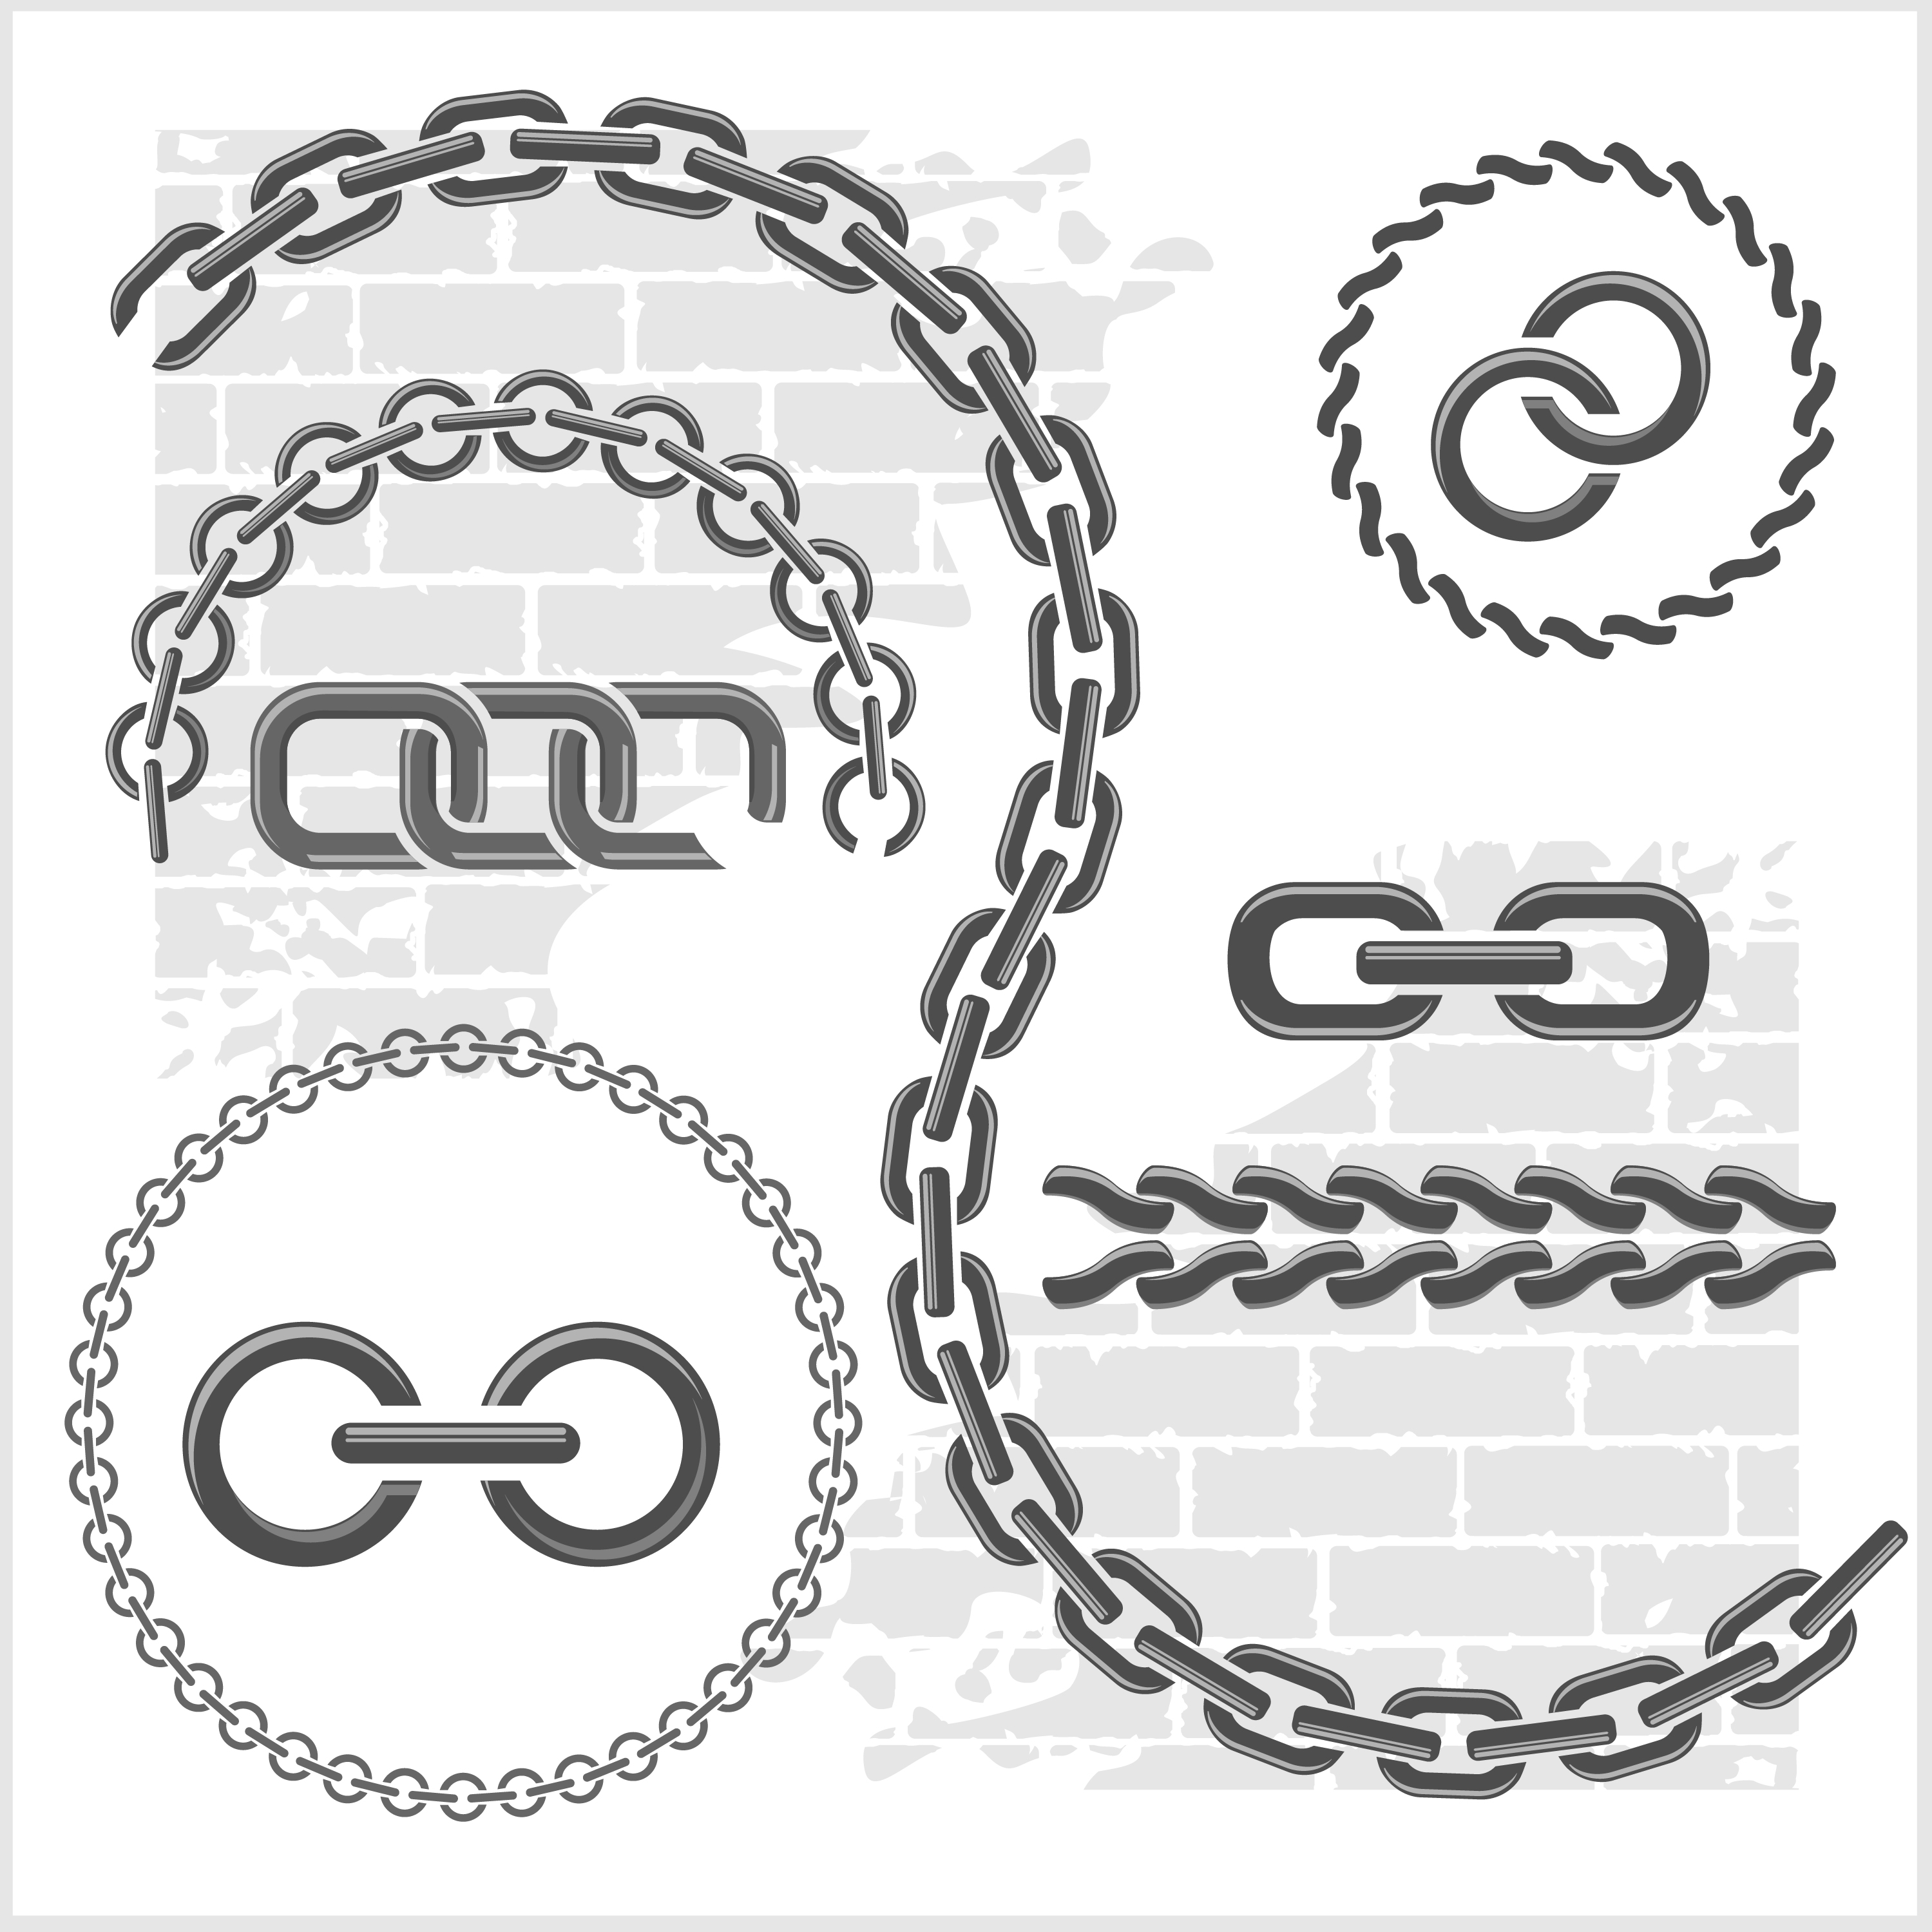 Metal chains vector design 03 free download  Chain Vector